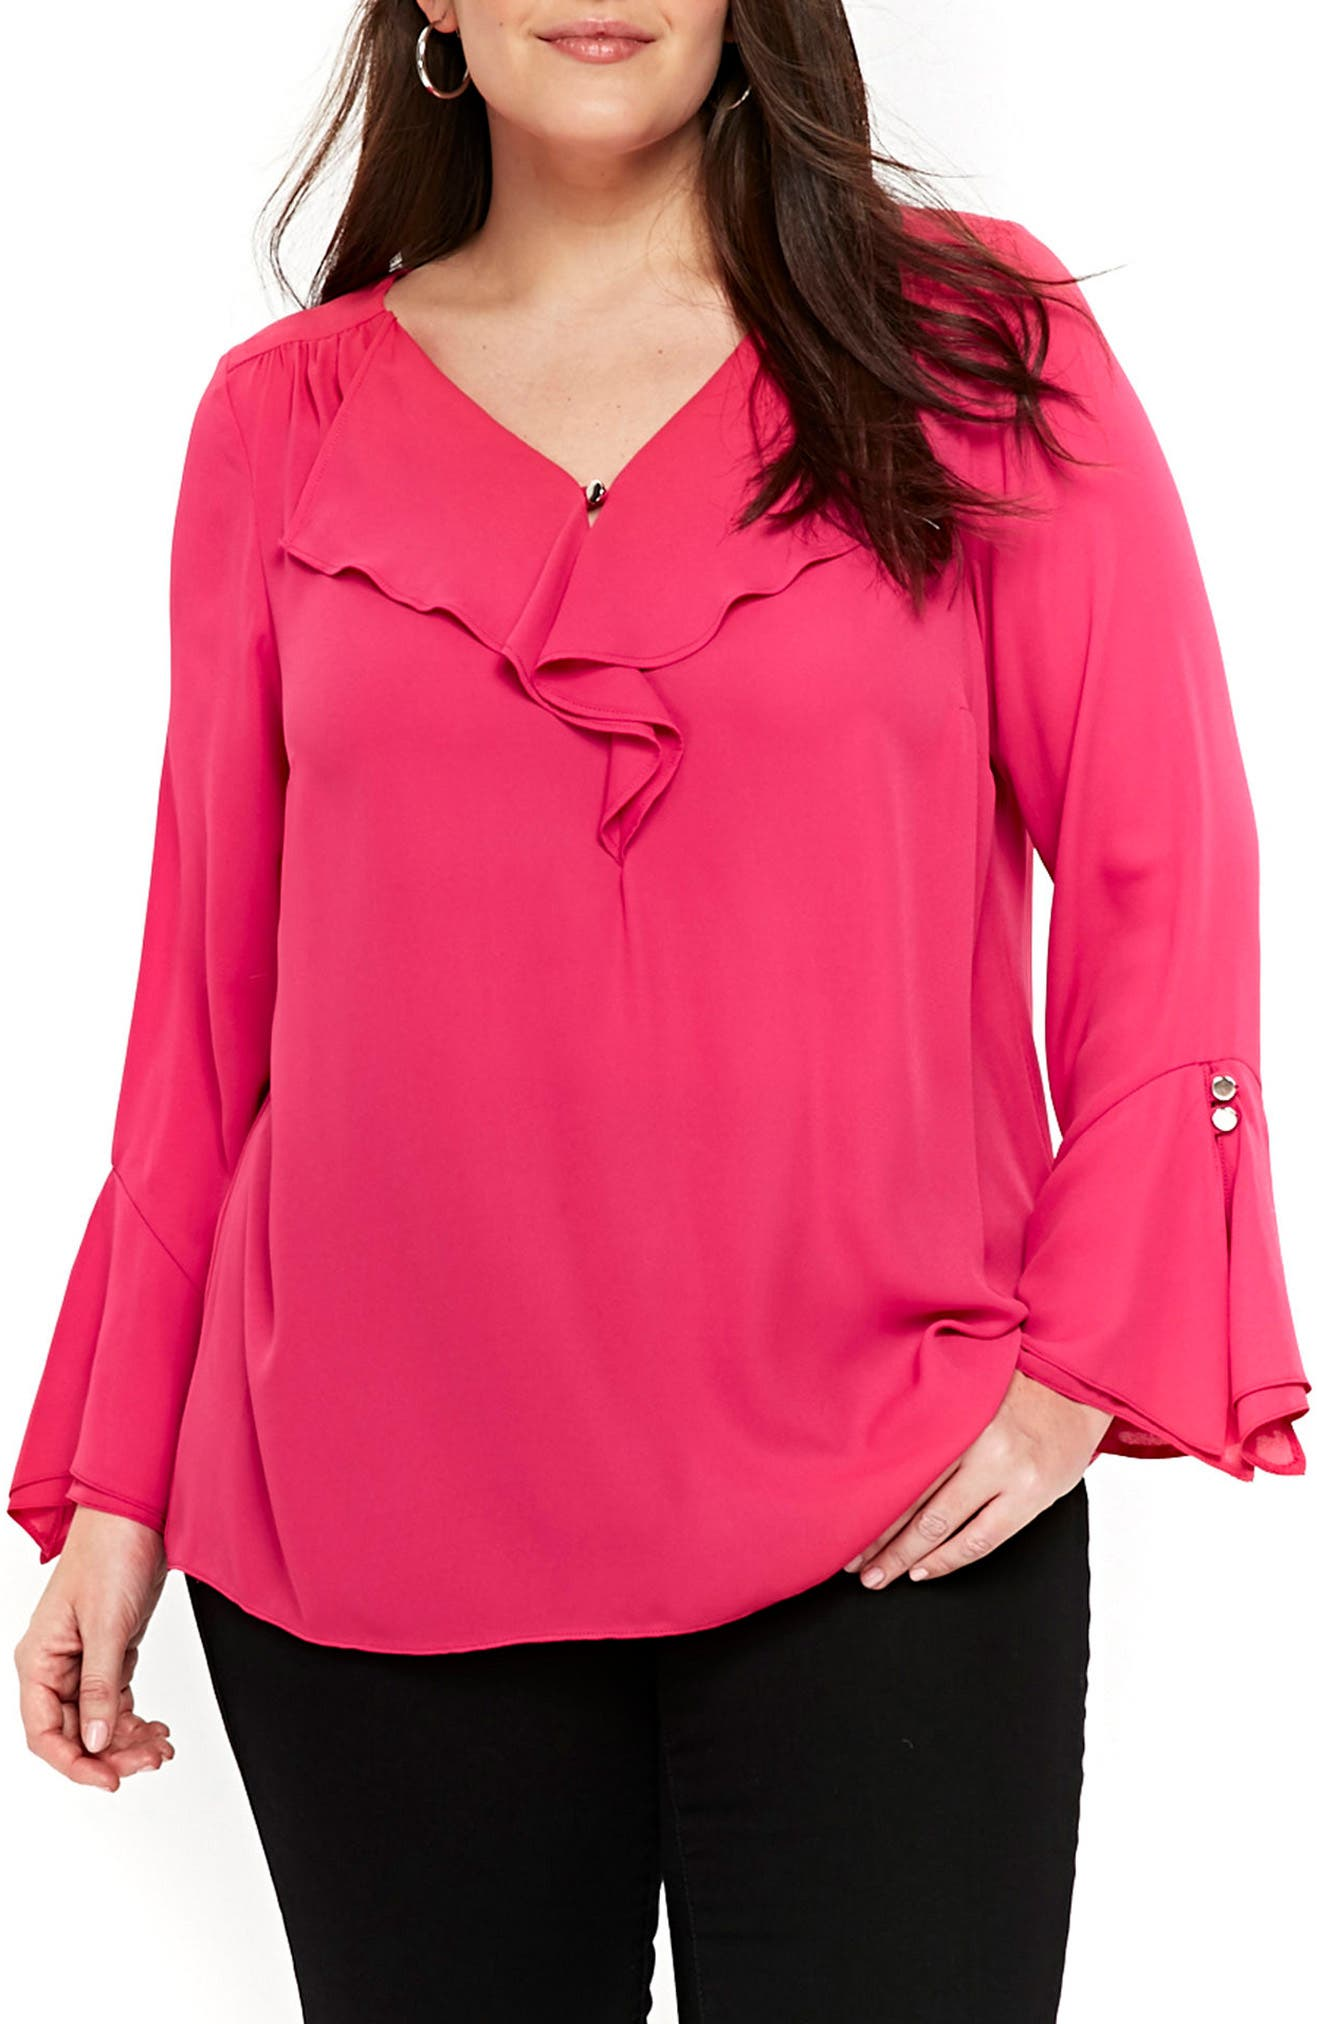 Ruffle Neck Bell Sleeve Top,                             Main thumbnail 1, color,                             Pink